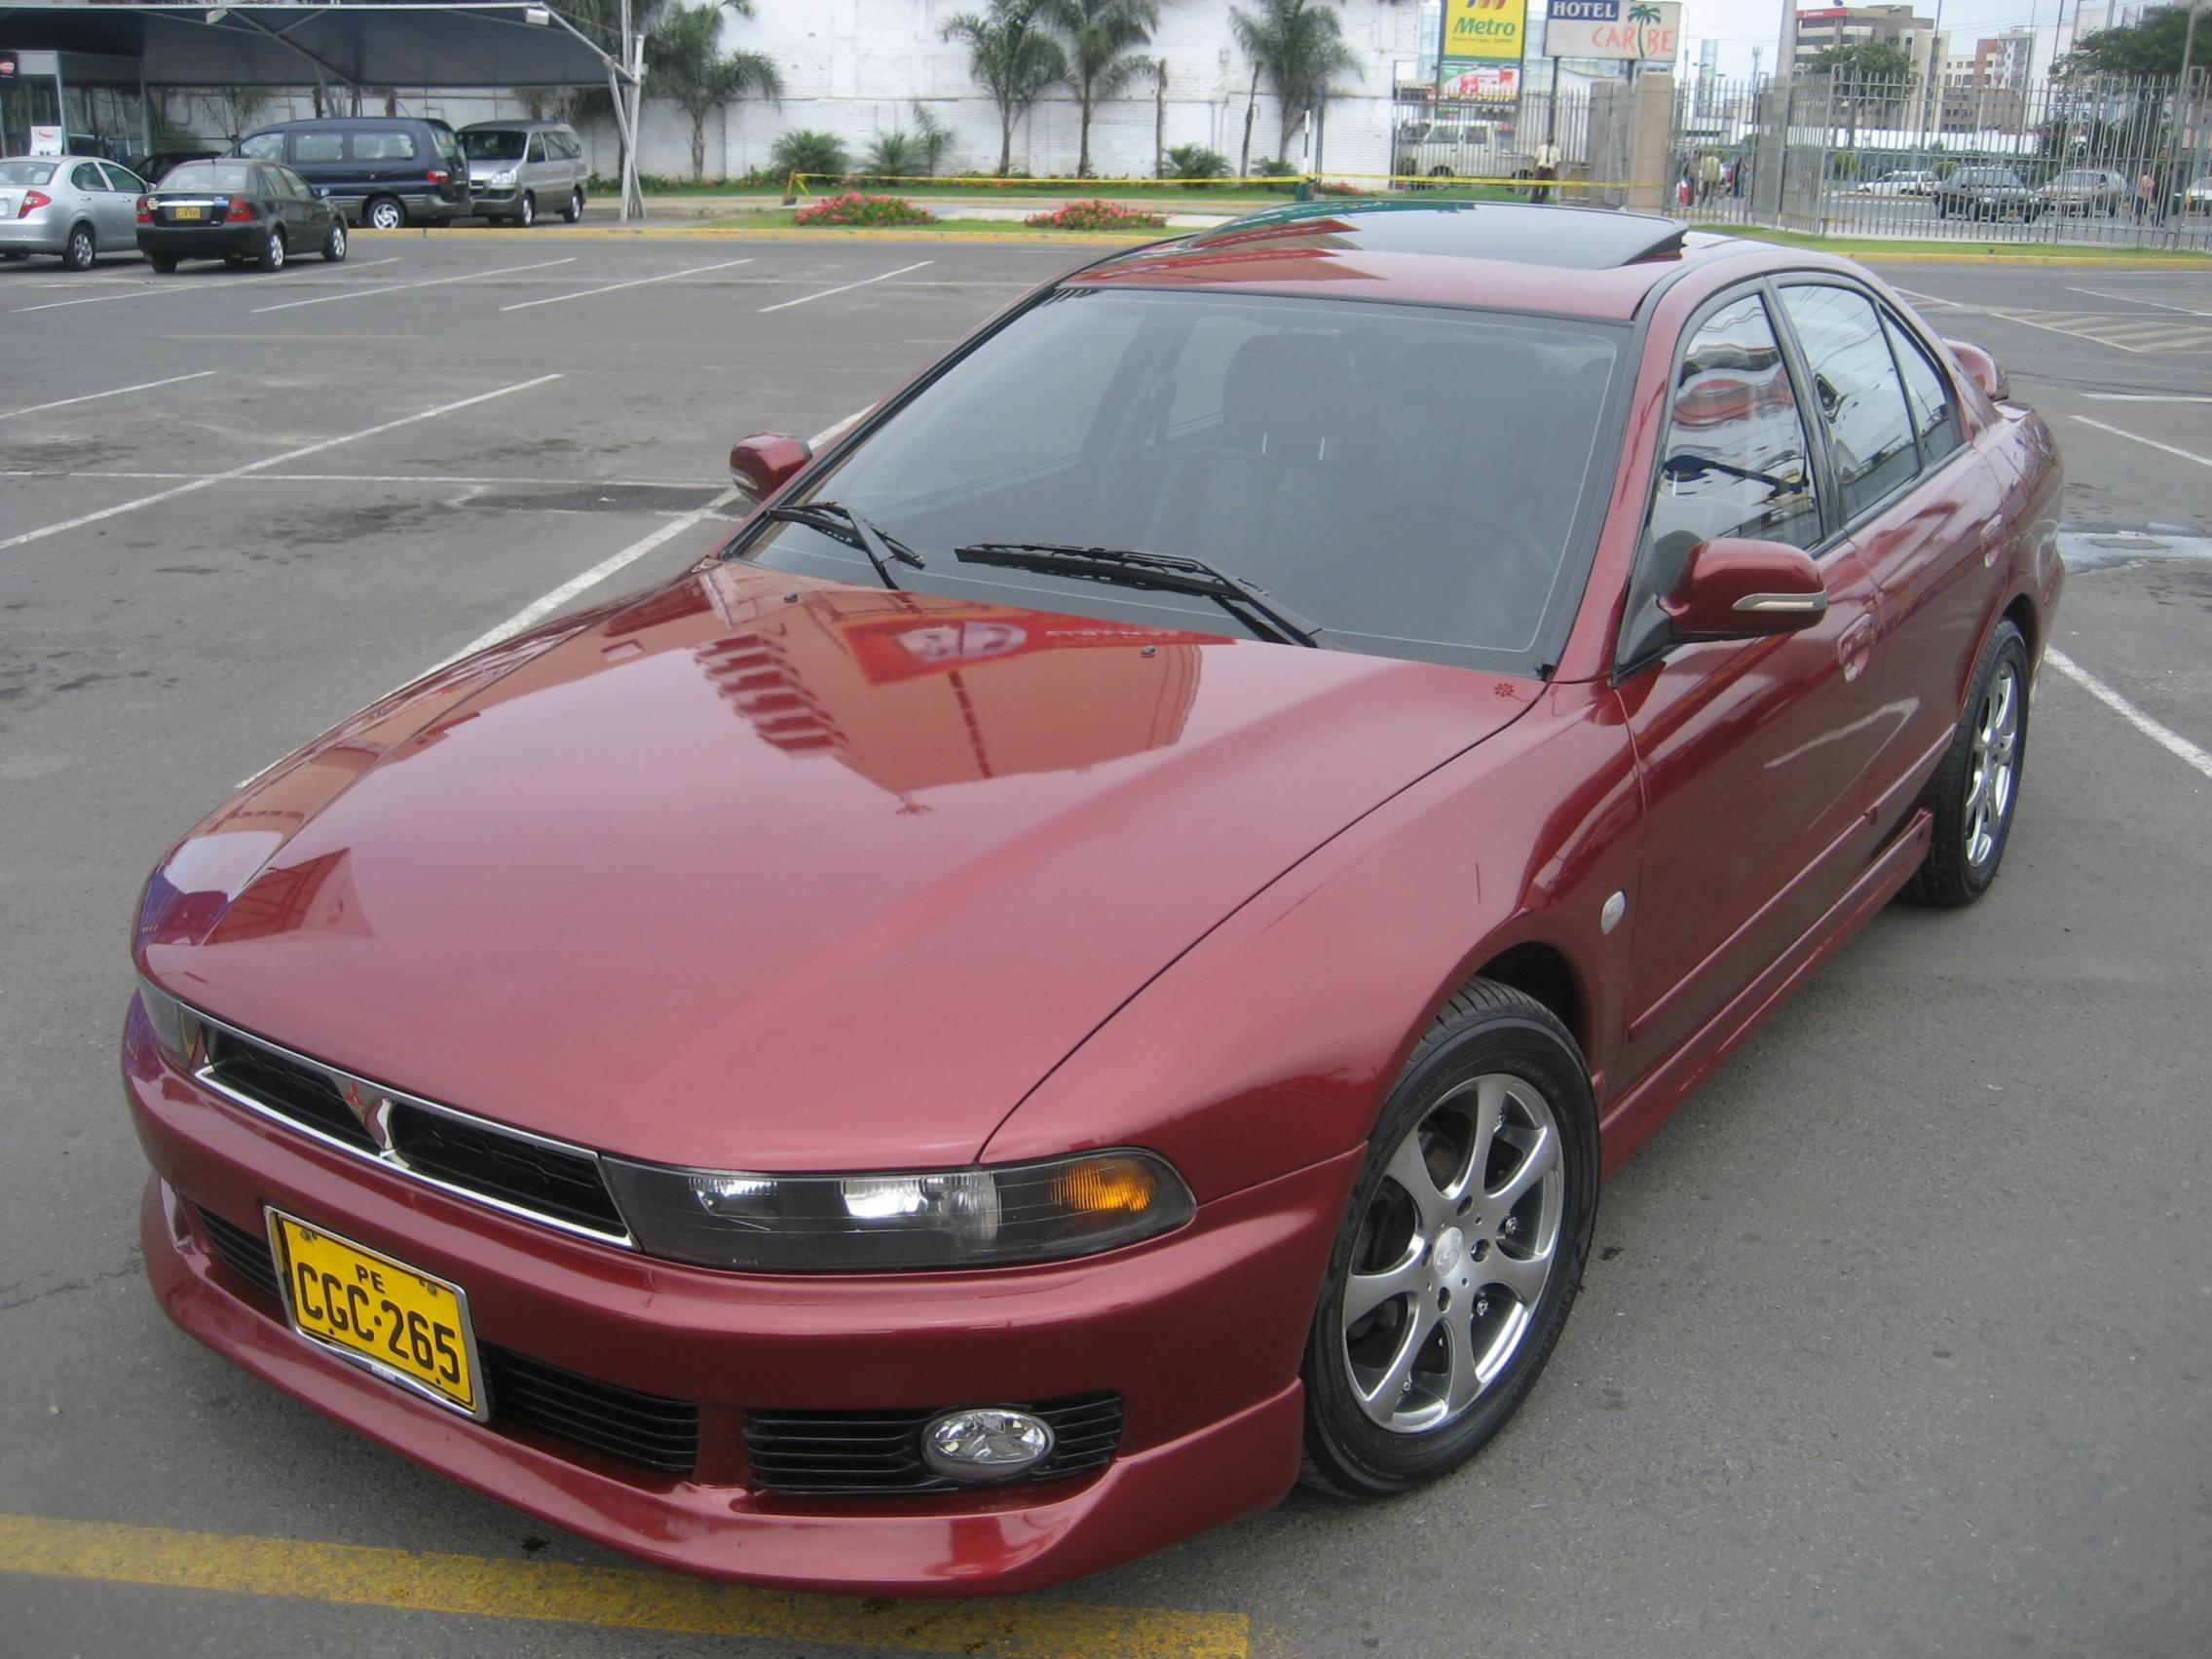 2002 mitsubishi galant information and photos zombiedrive. Black Bedroom Furniture Sets. Home Design Ideas